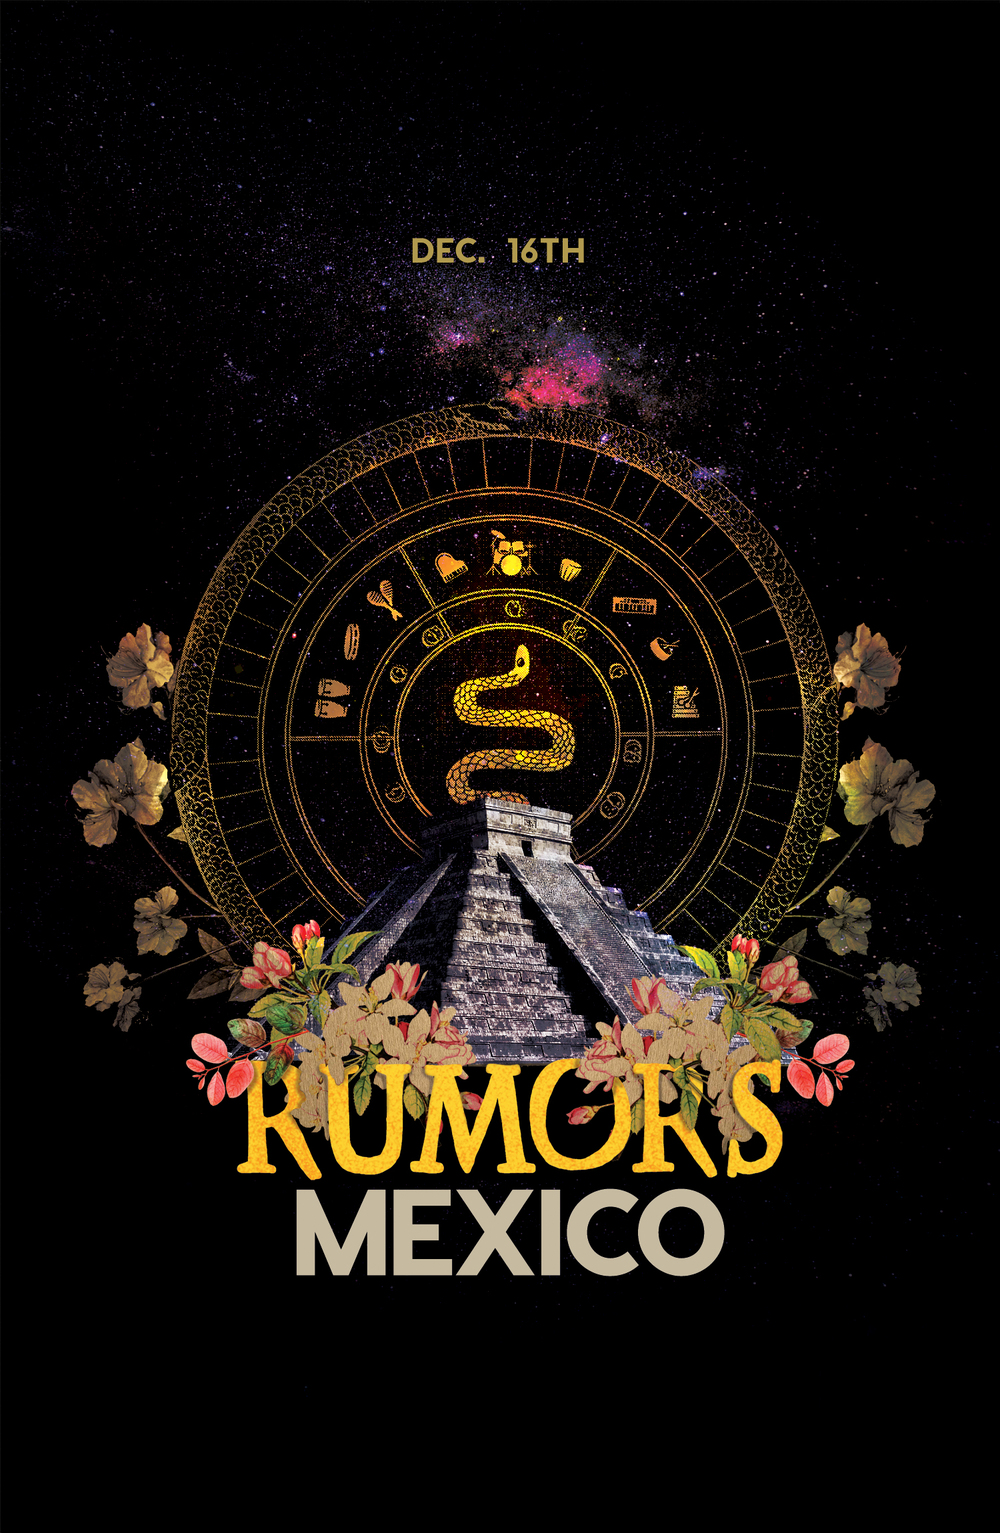 Rumors-MEXICO-11x17.jpg